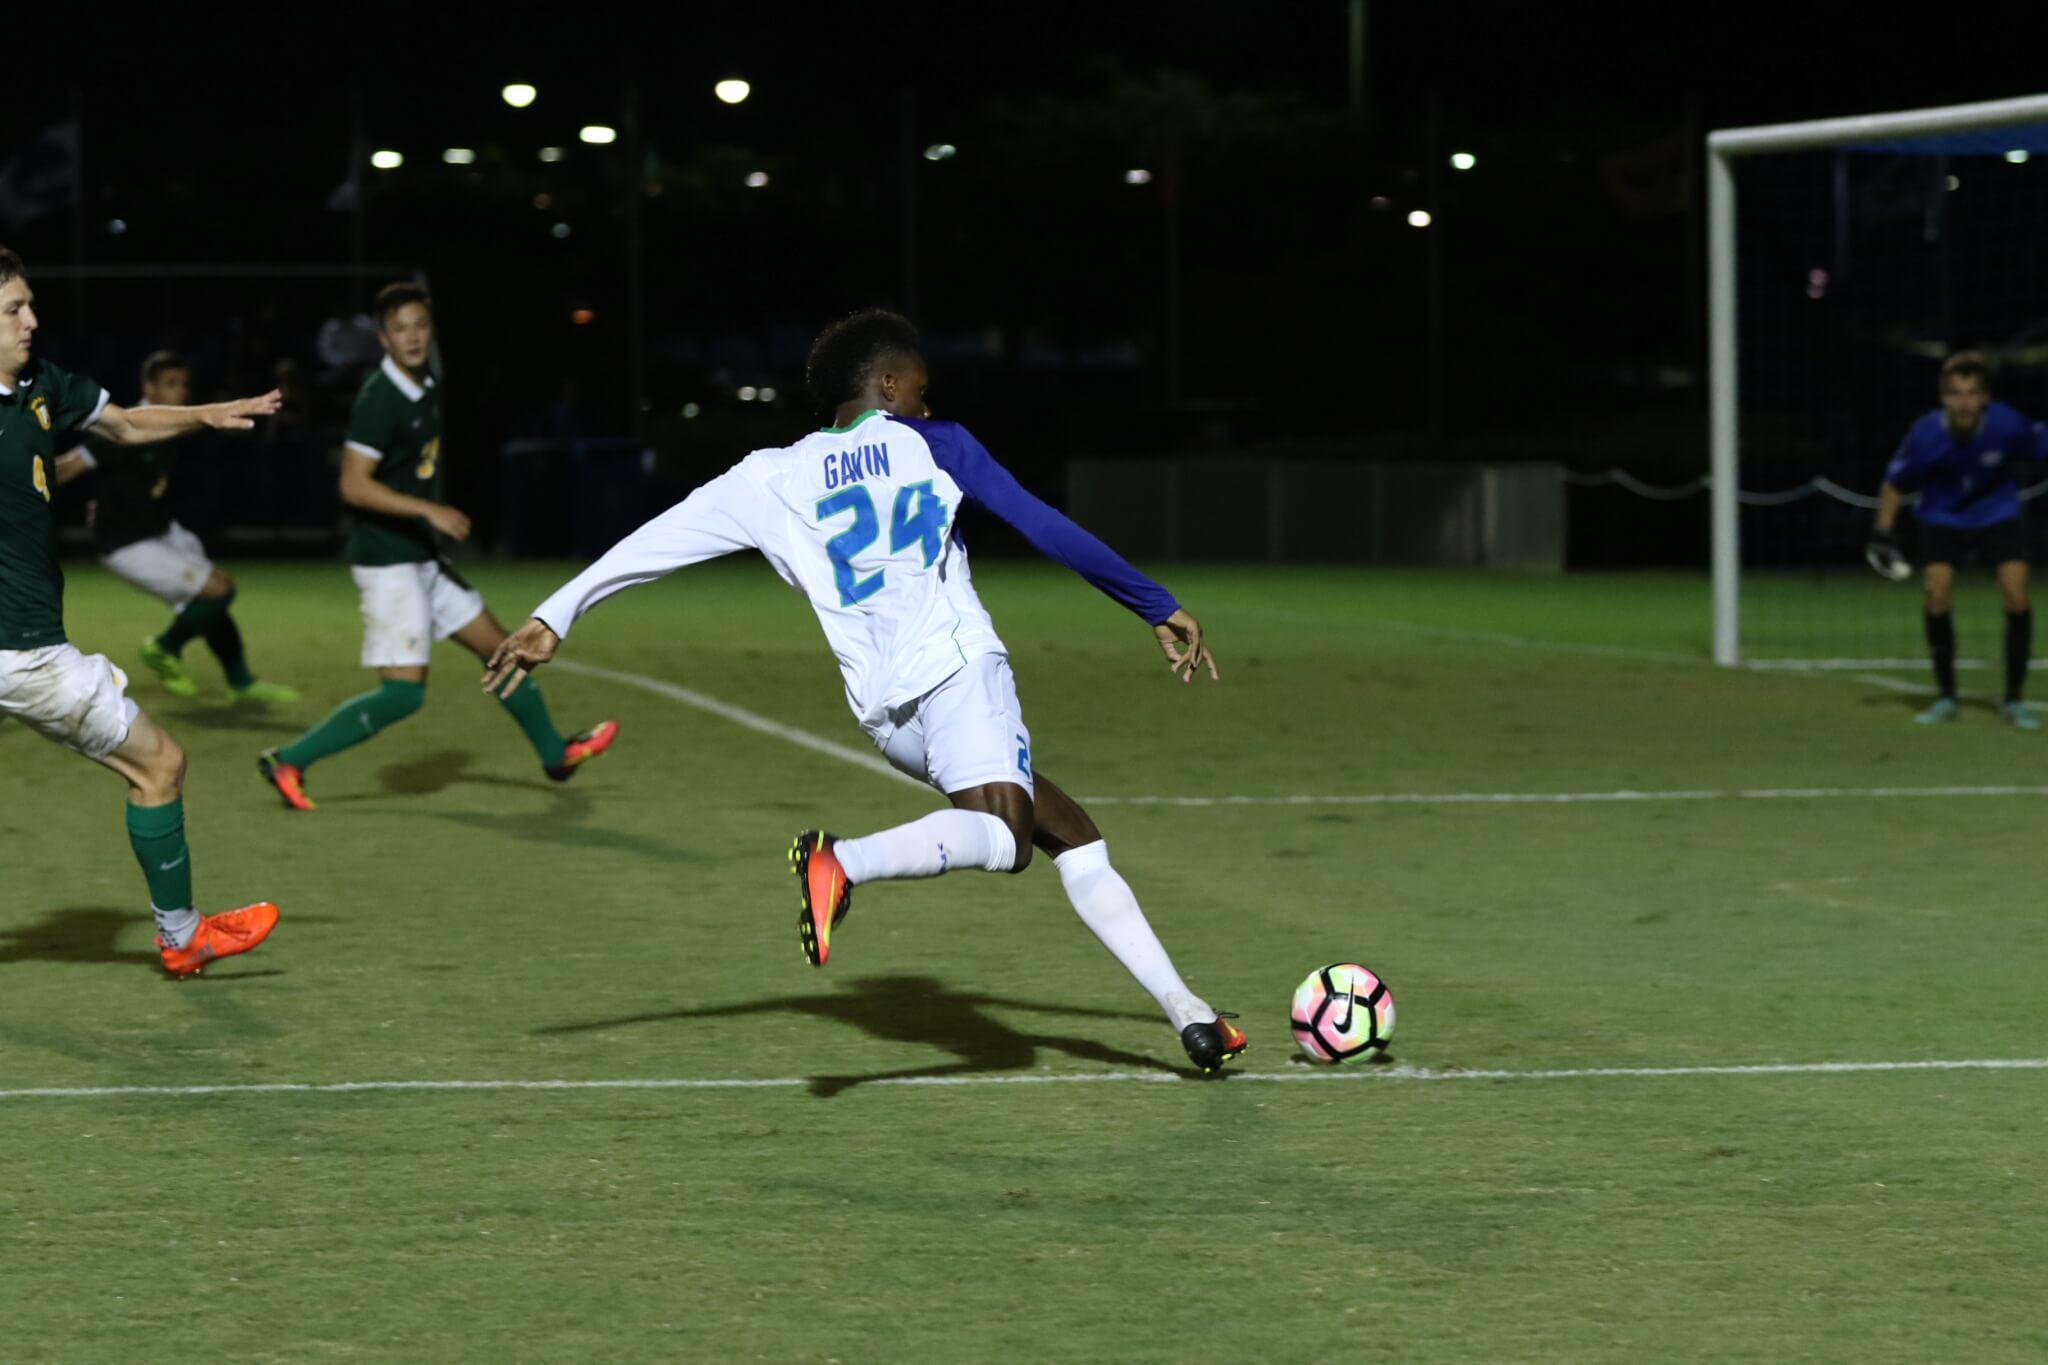 FGCU men's soccer earns 1-1 draw against Lipscomb in final contest of the regular-season